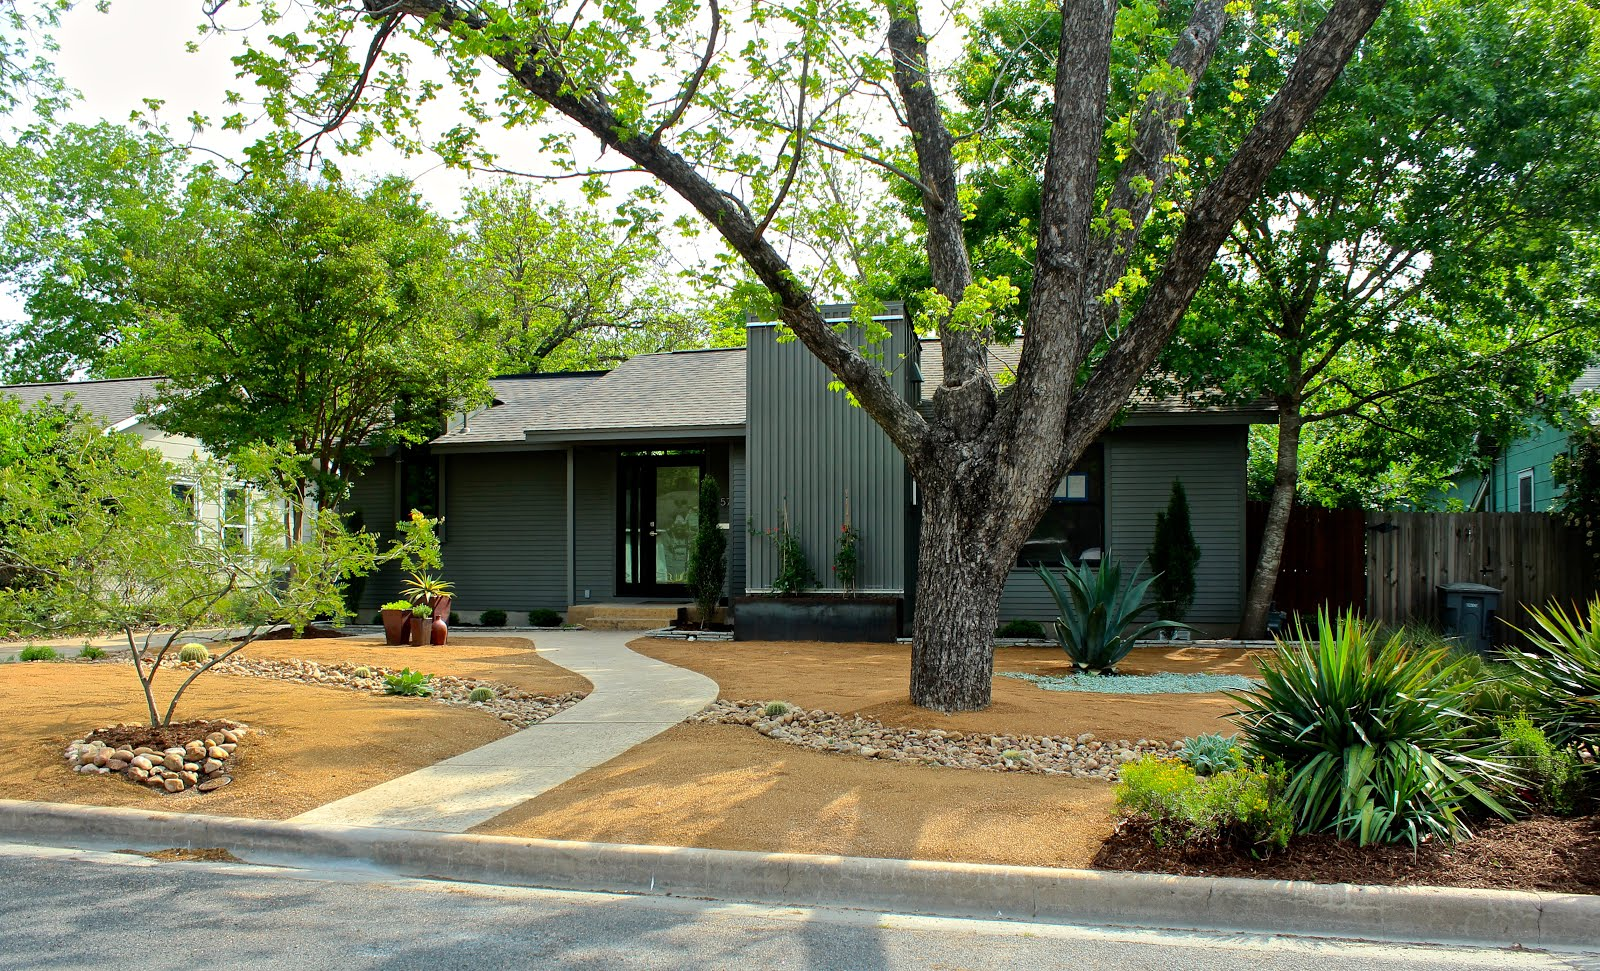 Crushed Granite For Landscaping - Landscape Ideas on Decomposed Granite Backyard Ideas id=71672